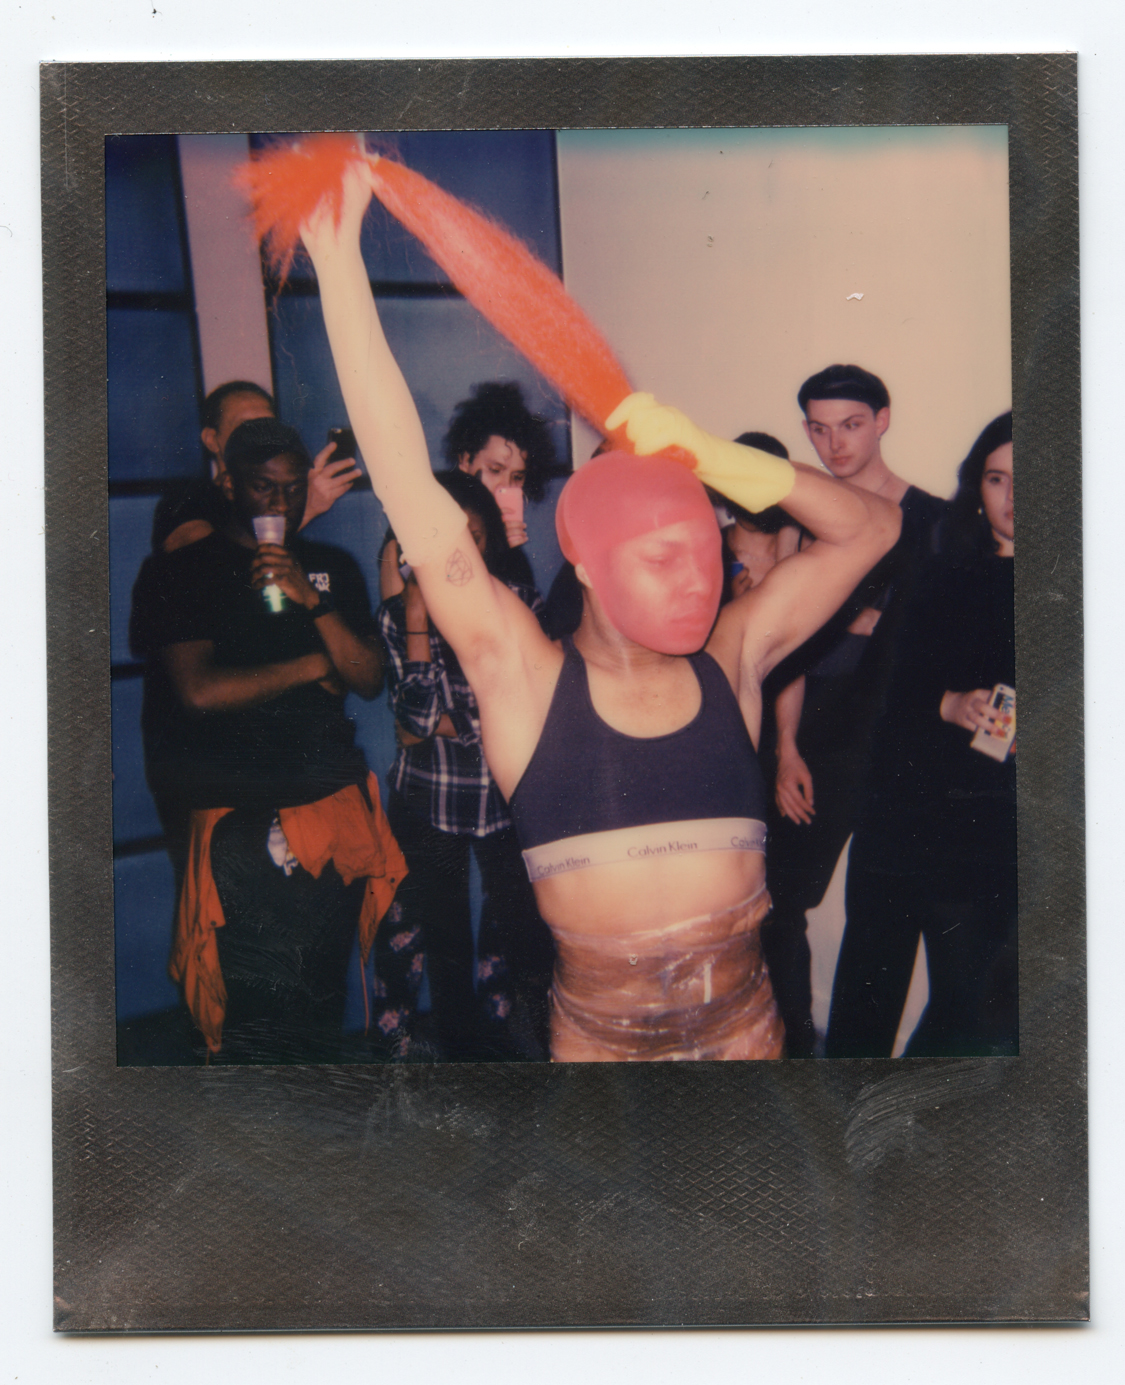 TV-ACTIV-KeijaunThomas_02-polaroidbyFredAttenborough.jpg